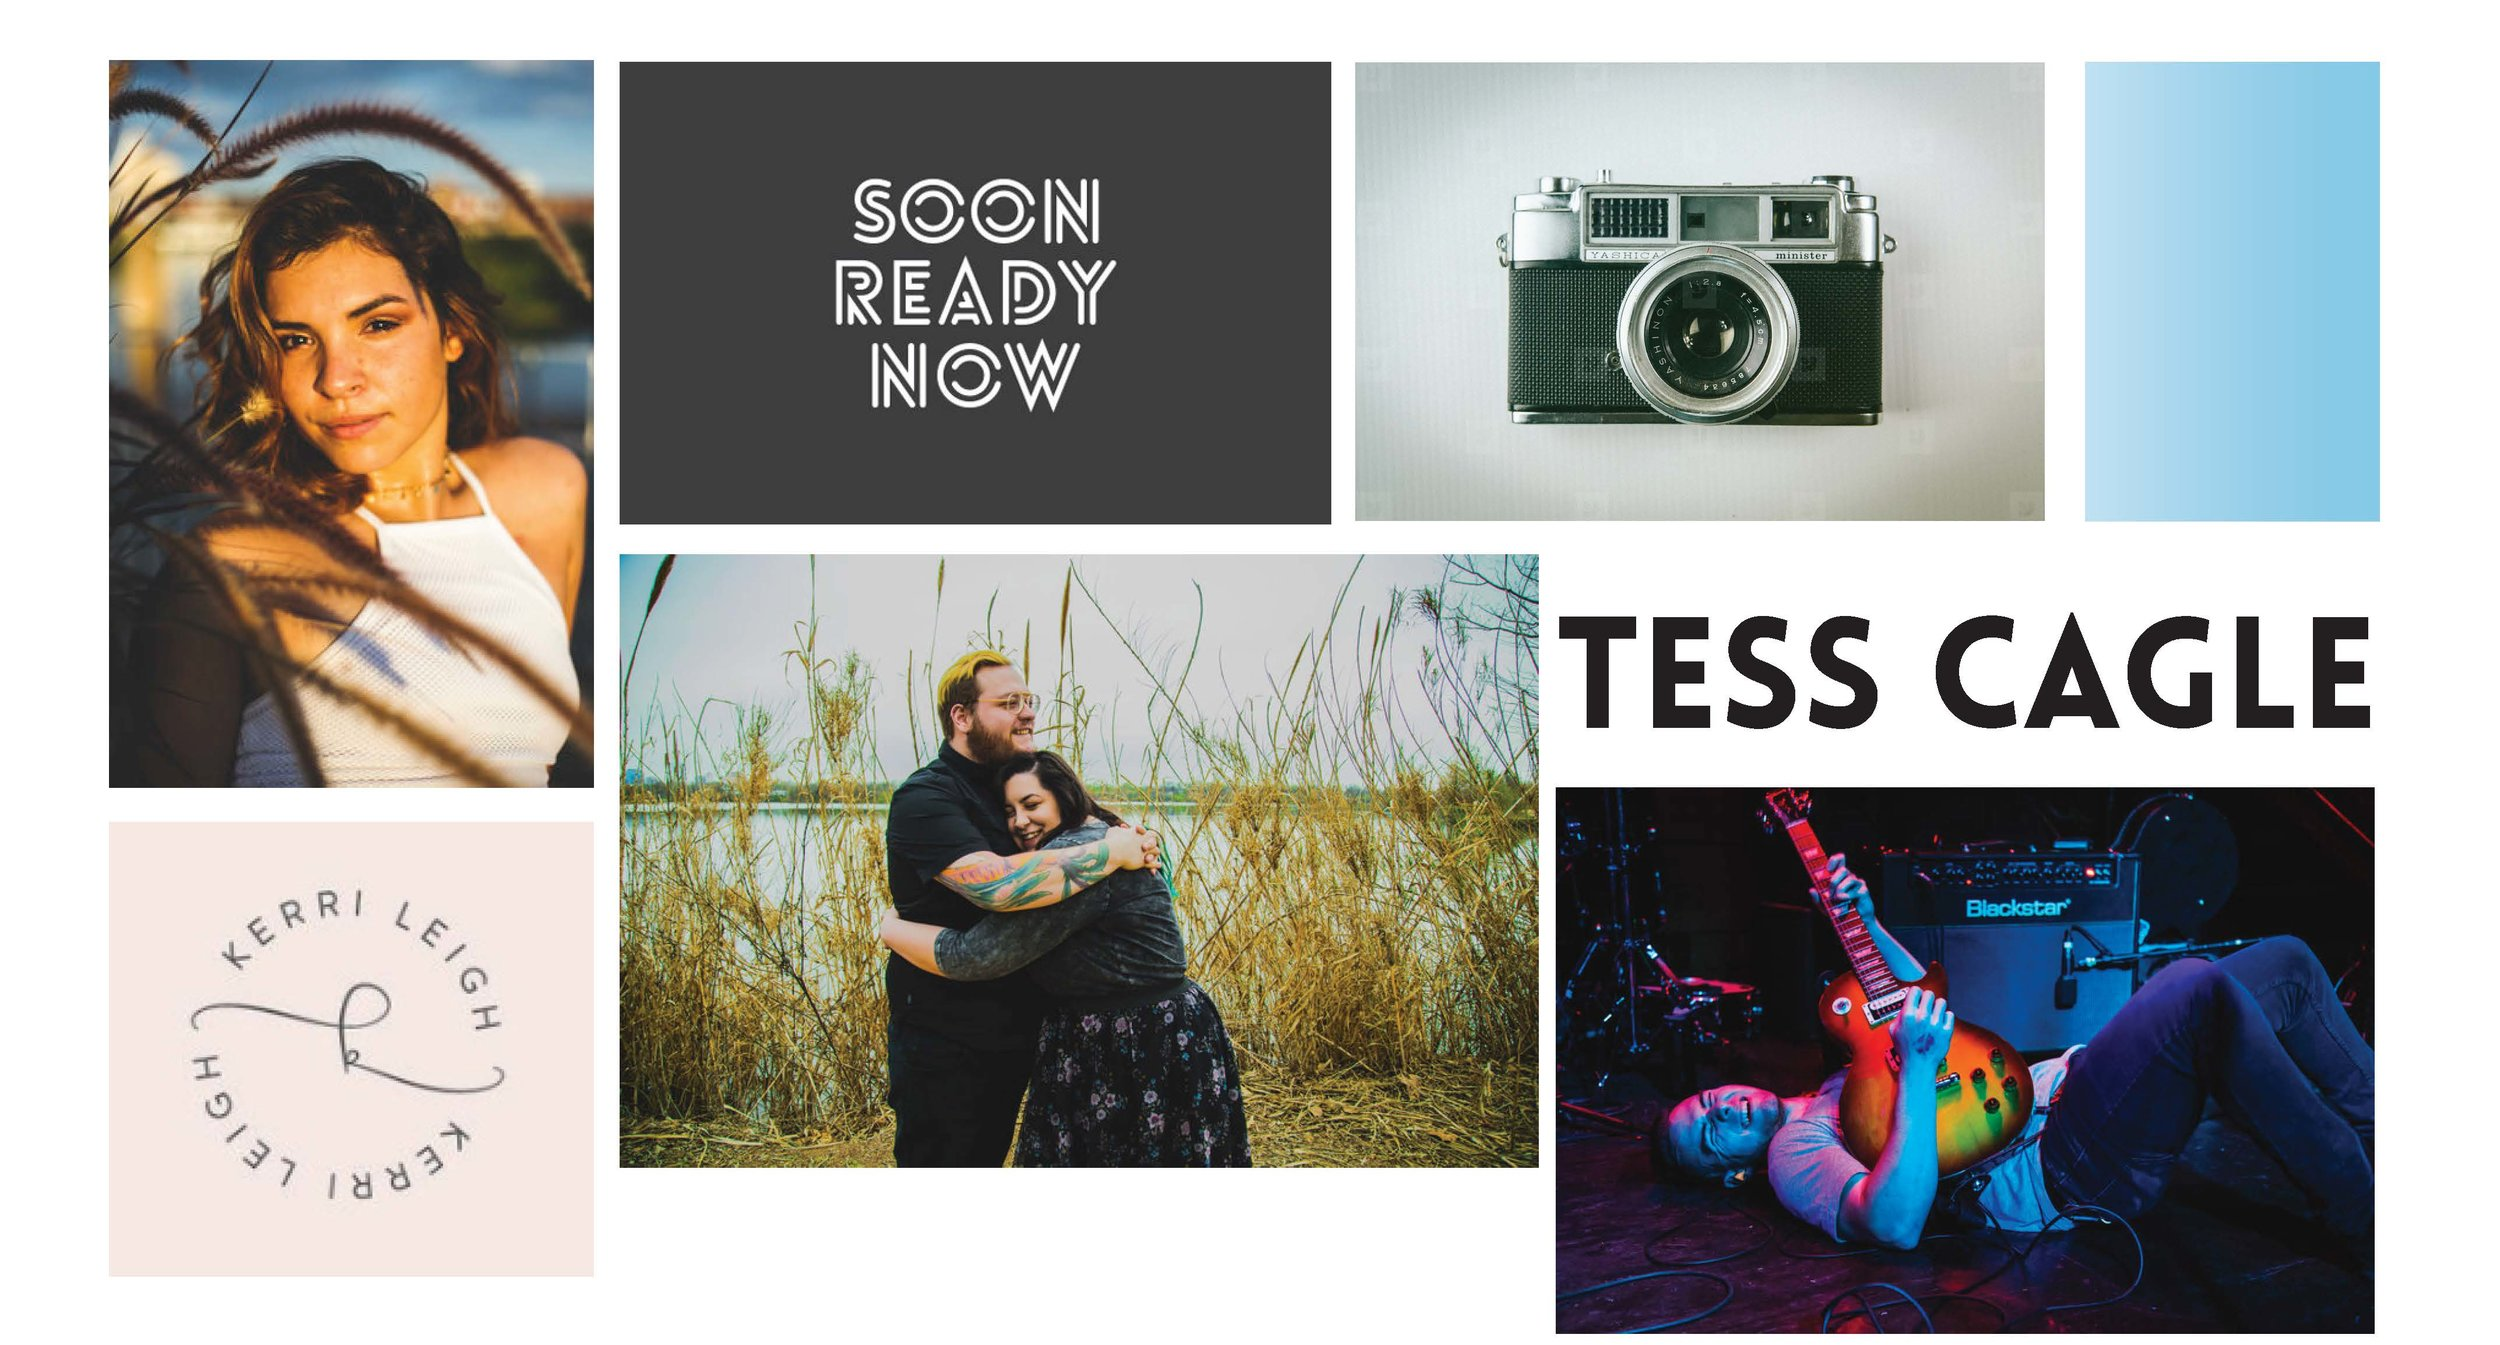 B R A N D - We started with a specific sans serif font that Tess loved. From there we worked together to create a bold and elegant monogram logo versatile for use on both her edgy and energetic concert photos and softer breathtaking wedding portraiture.